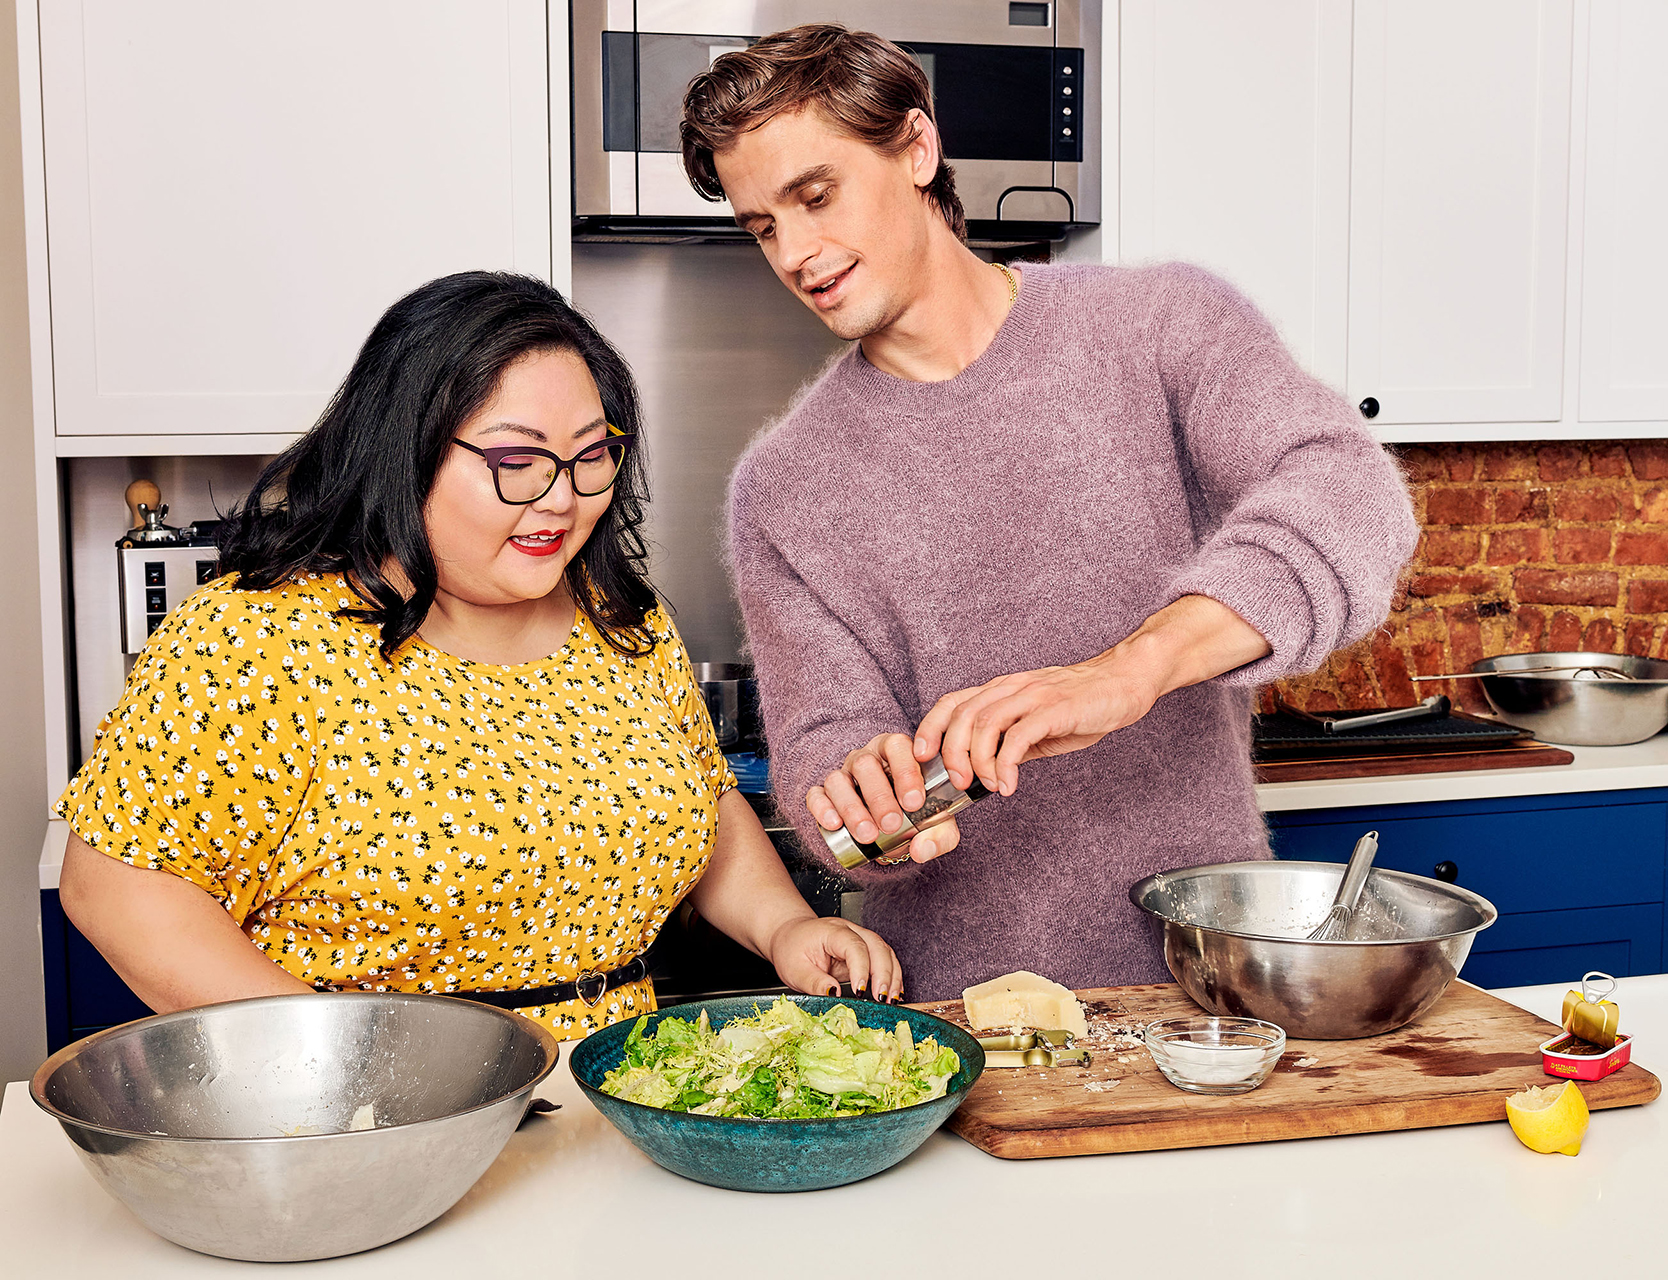 antoni cooking with friend